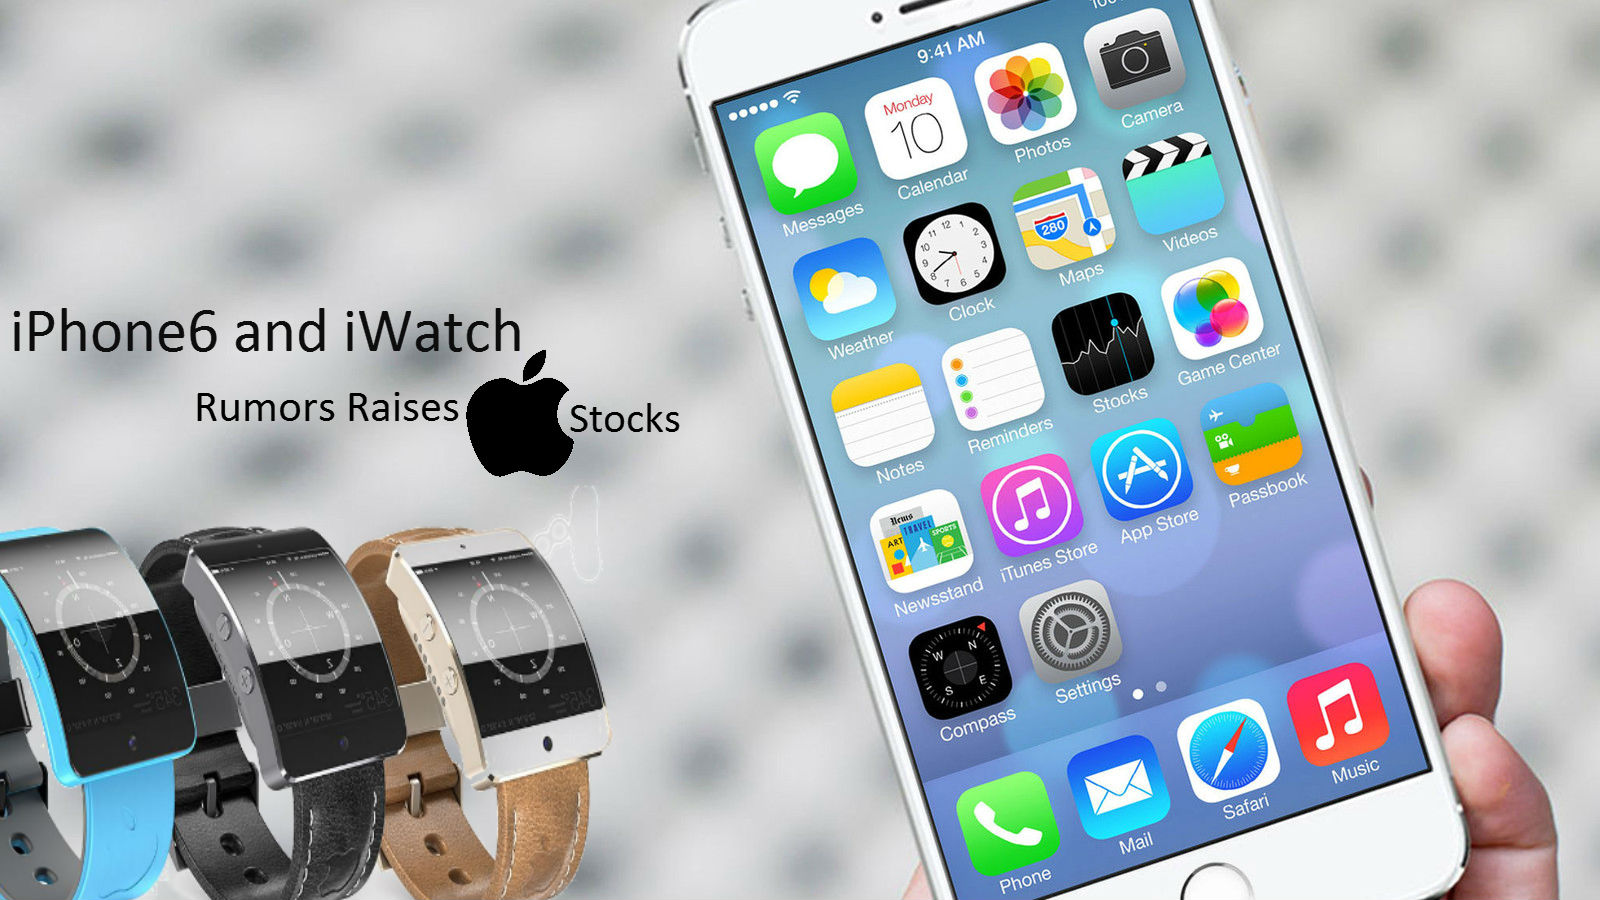 iwatch and iphone6